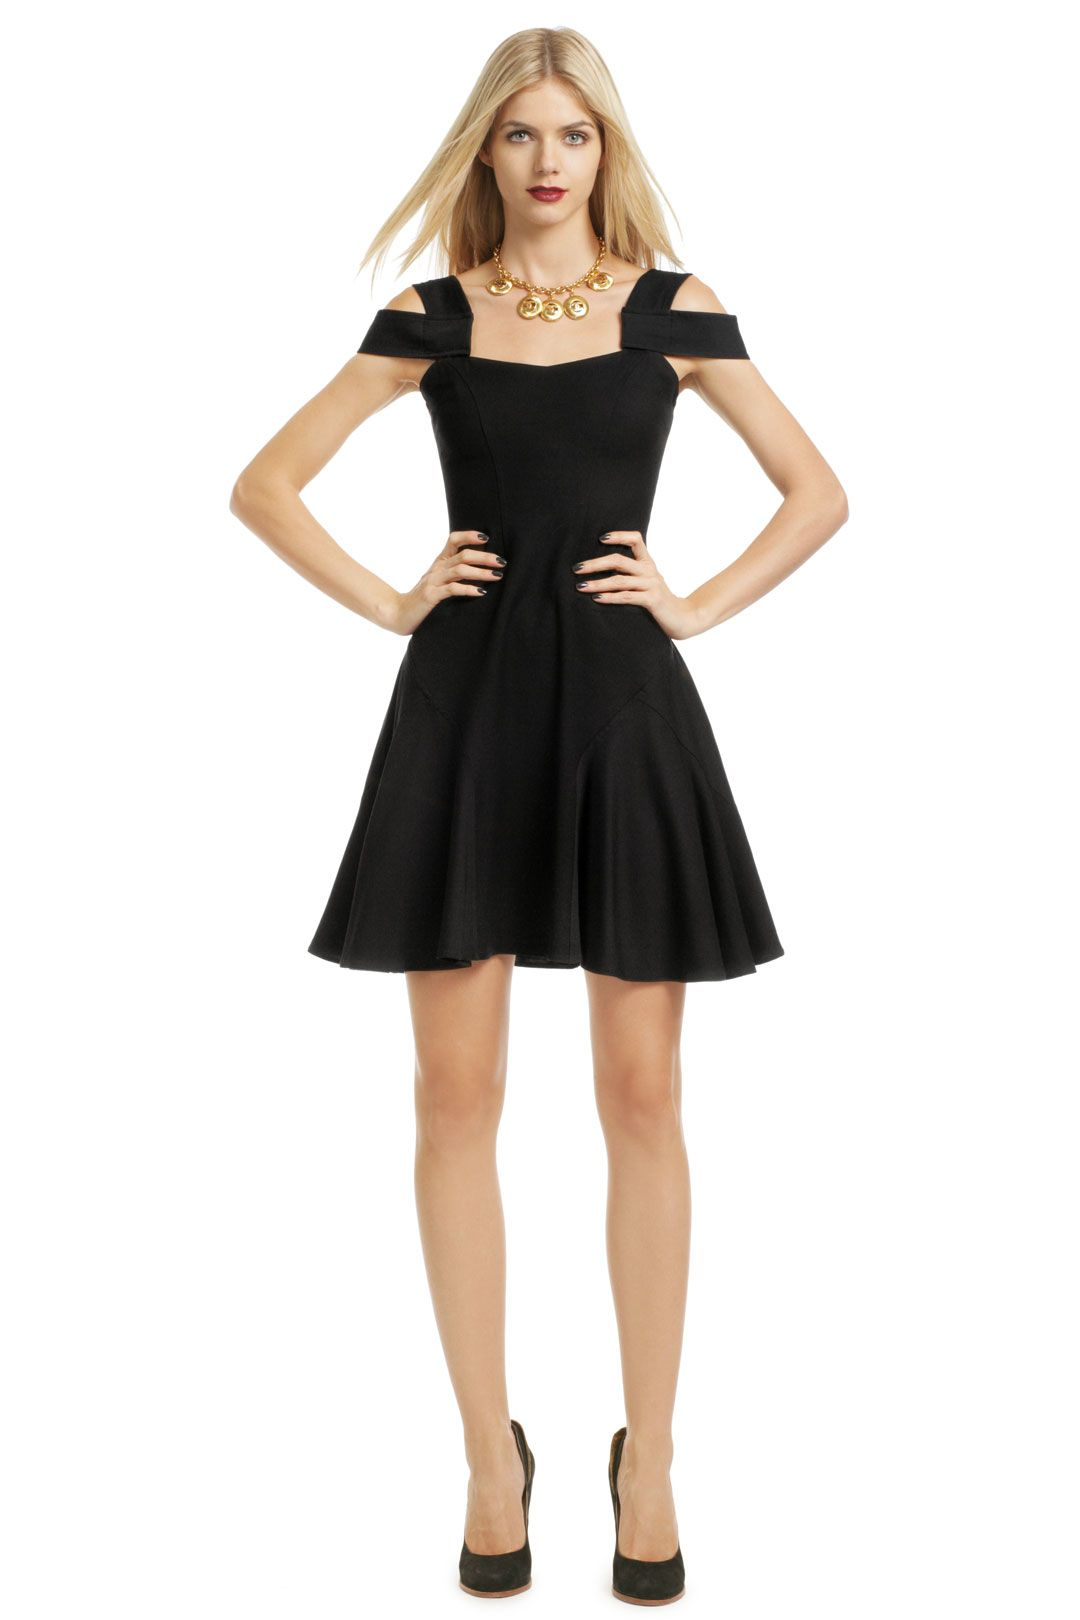 a61bc38914f Z Spoke Zac Posen A Little Respect Dress.. RENT FOR  75.00.....Zac Posen is  my homeboy